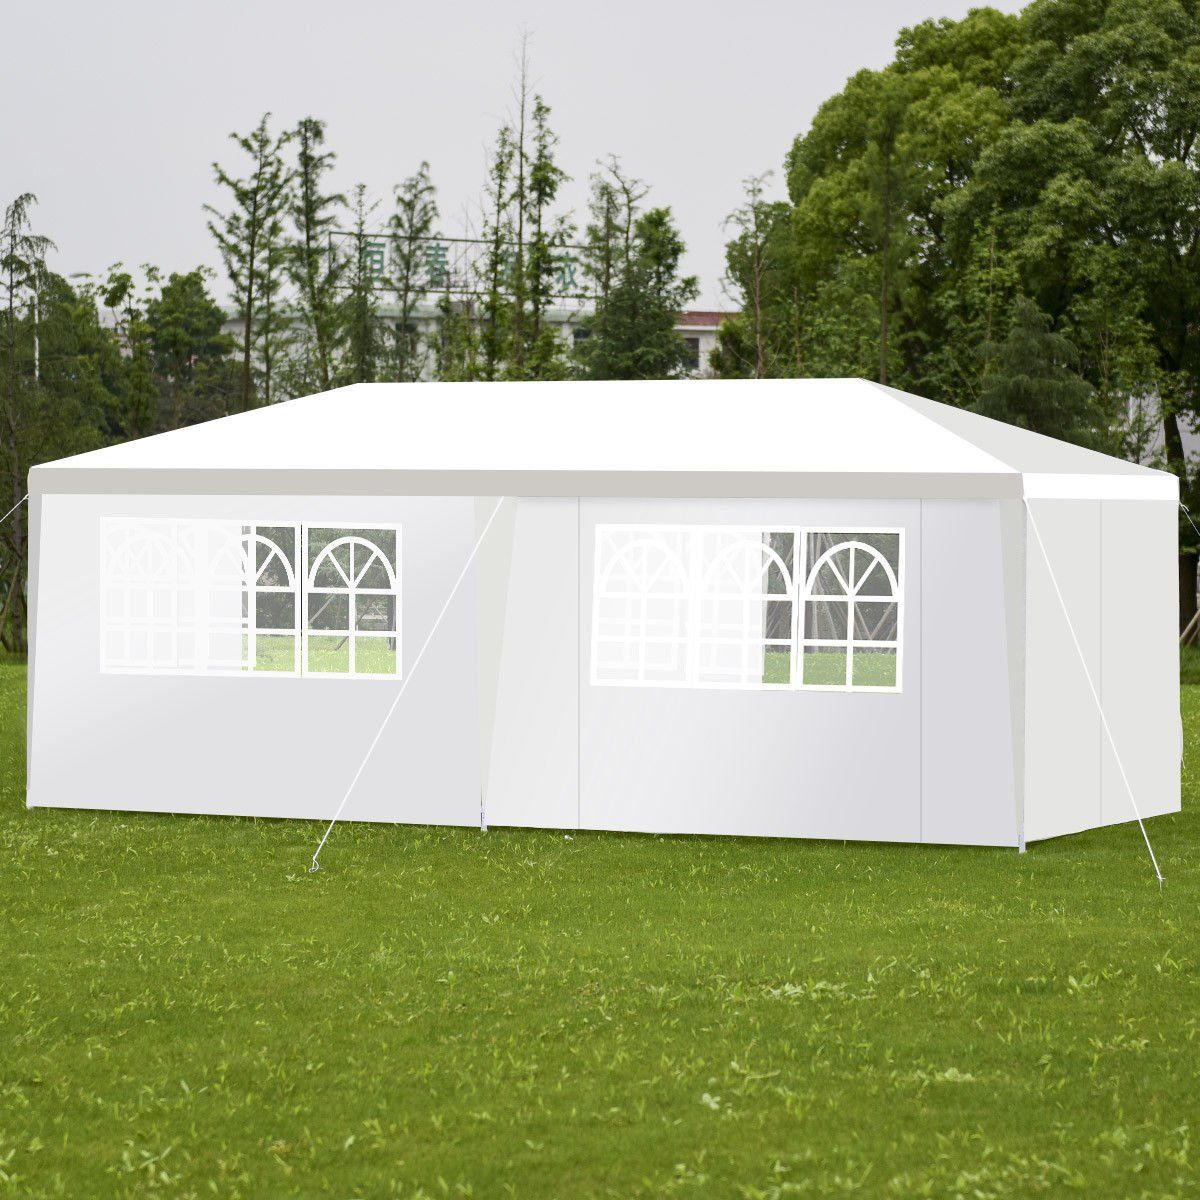 Tangkula Outdoor 10x20 Canopy Tent Heavy Duty Wedding Party Tent With 4 Removable Enclosure Sidewalls And 2 Zipp Canopy Tent Outdoor Canopy Tent Wedding Canopy